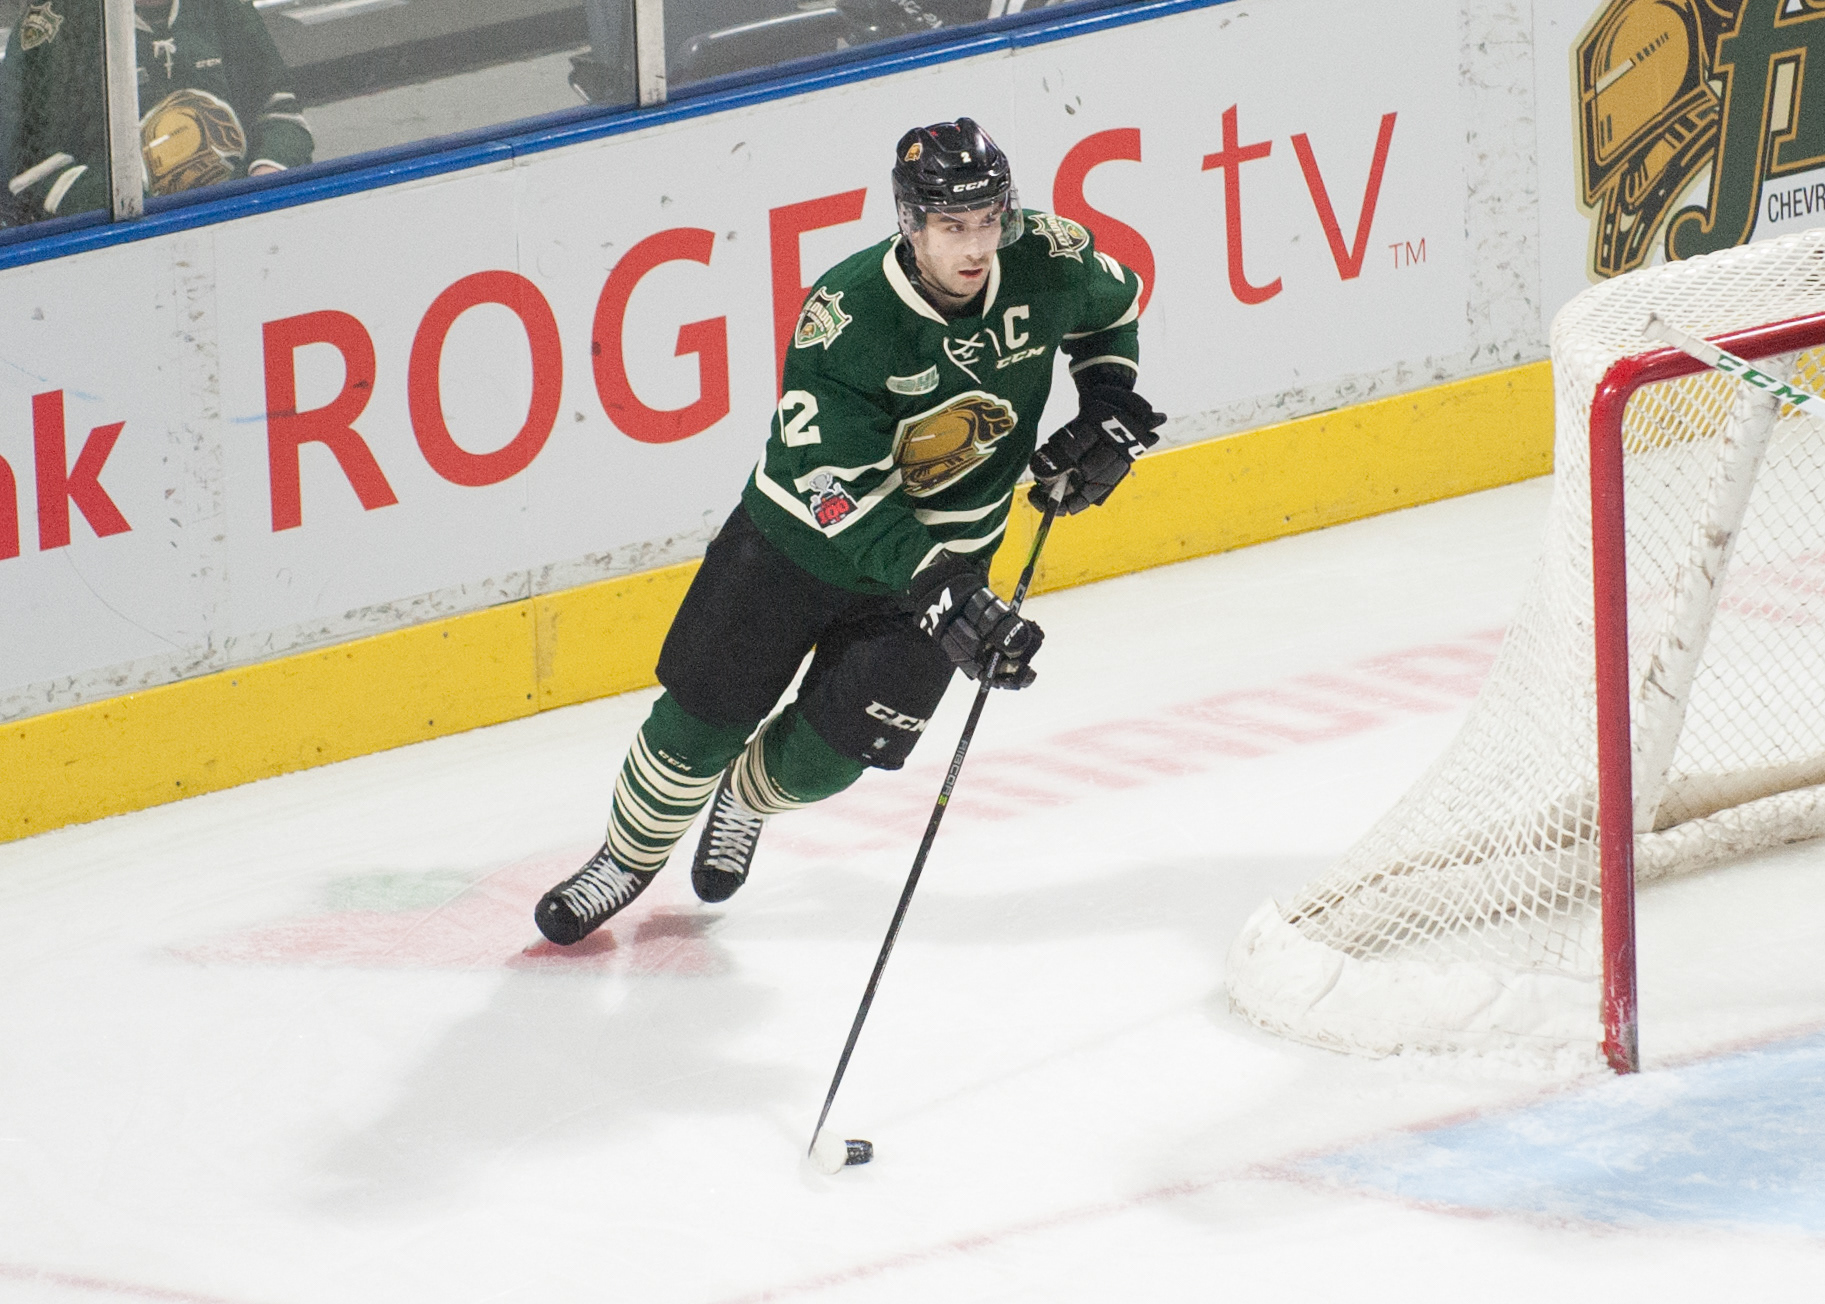 Knights gain even more NHL experience